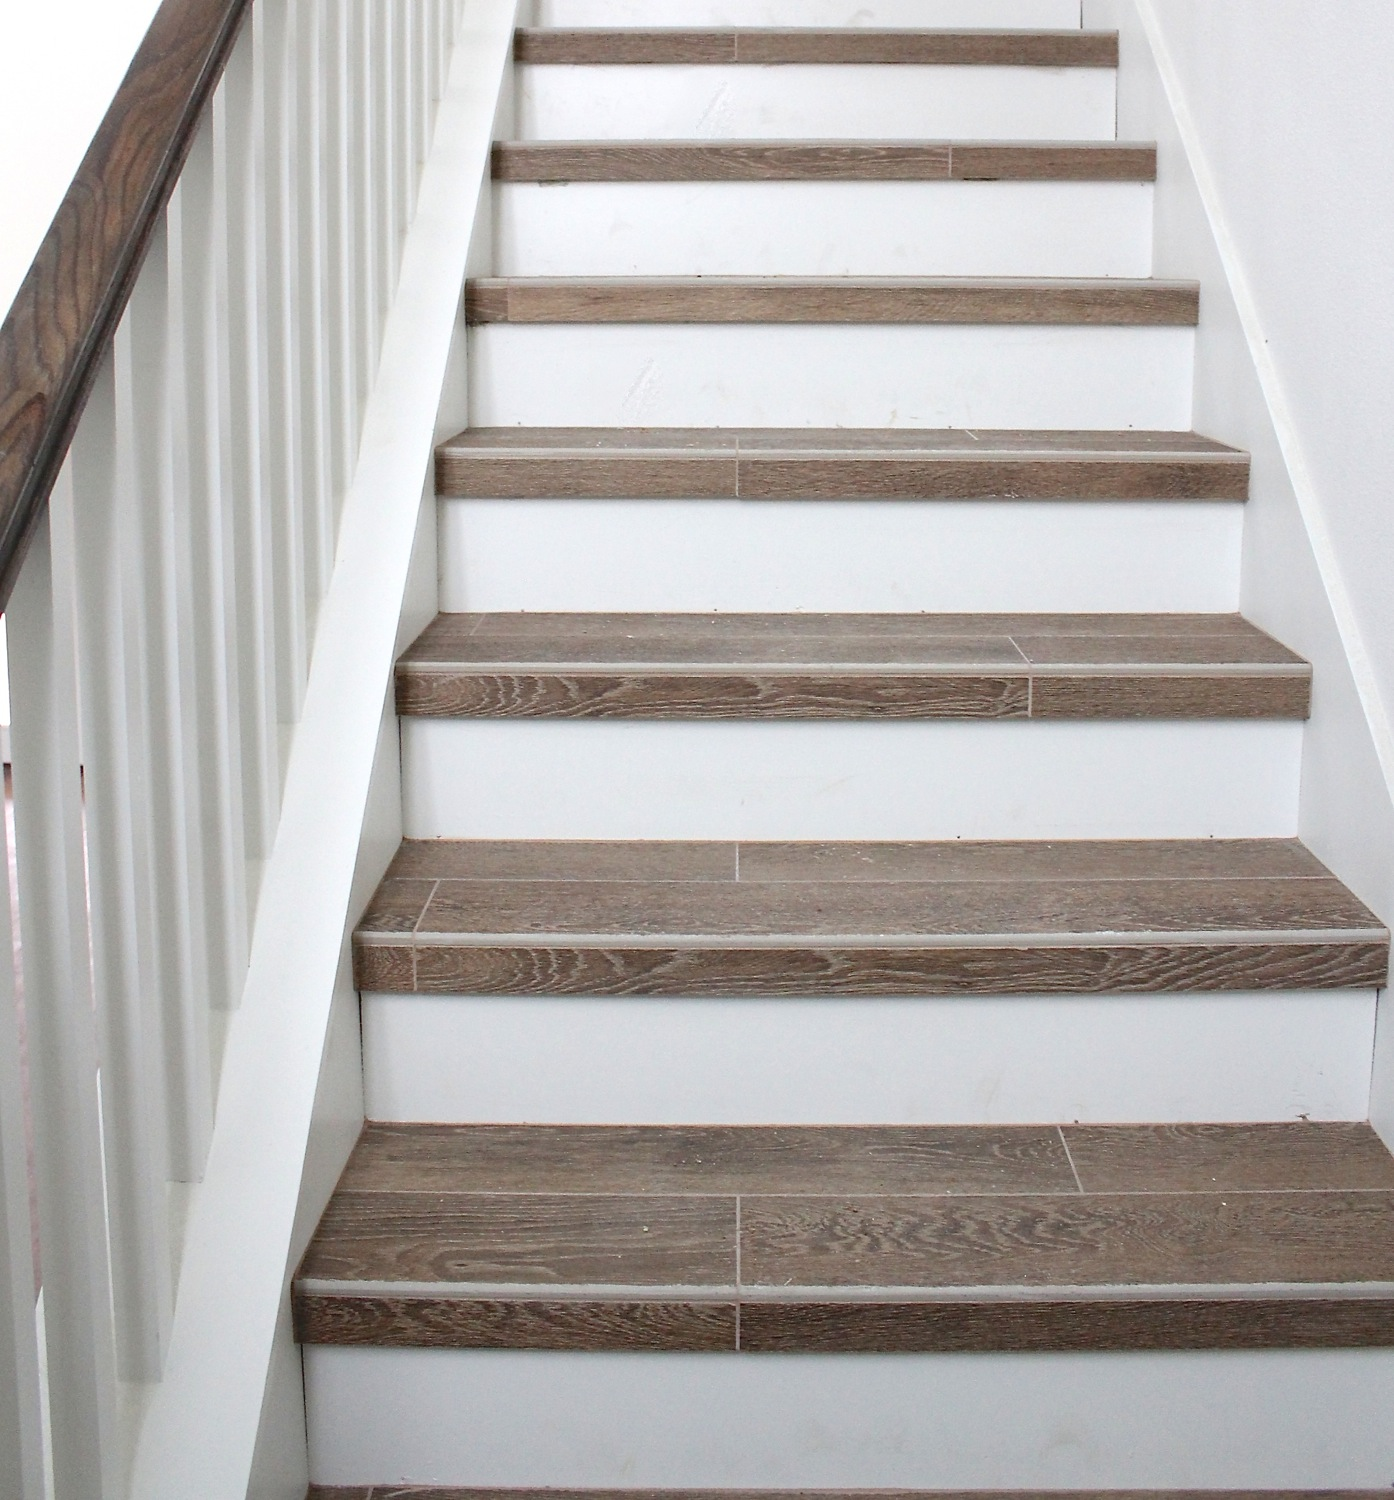 Building A New Home Tile Flooring Countertops And Color Made | Wood Look Tile For Stairs | Weathered Wood Distressed | Ceramic | Bedroom | Rocell Living Room | Porcelain